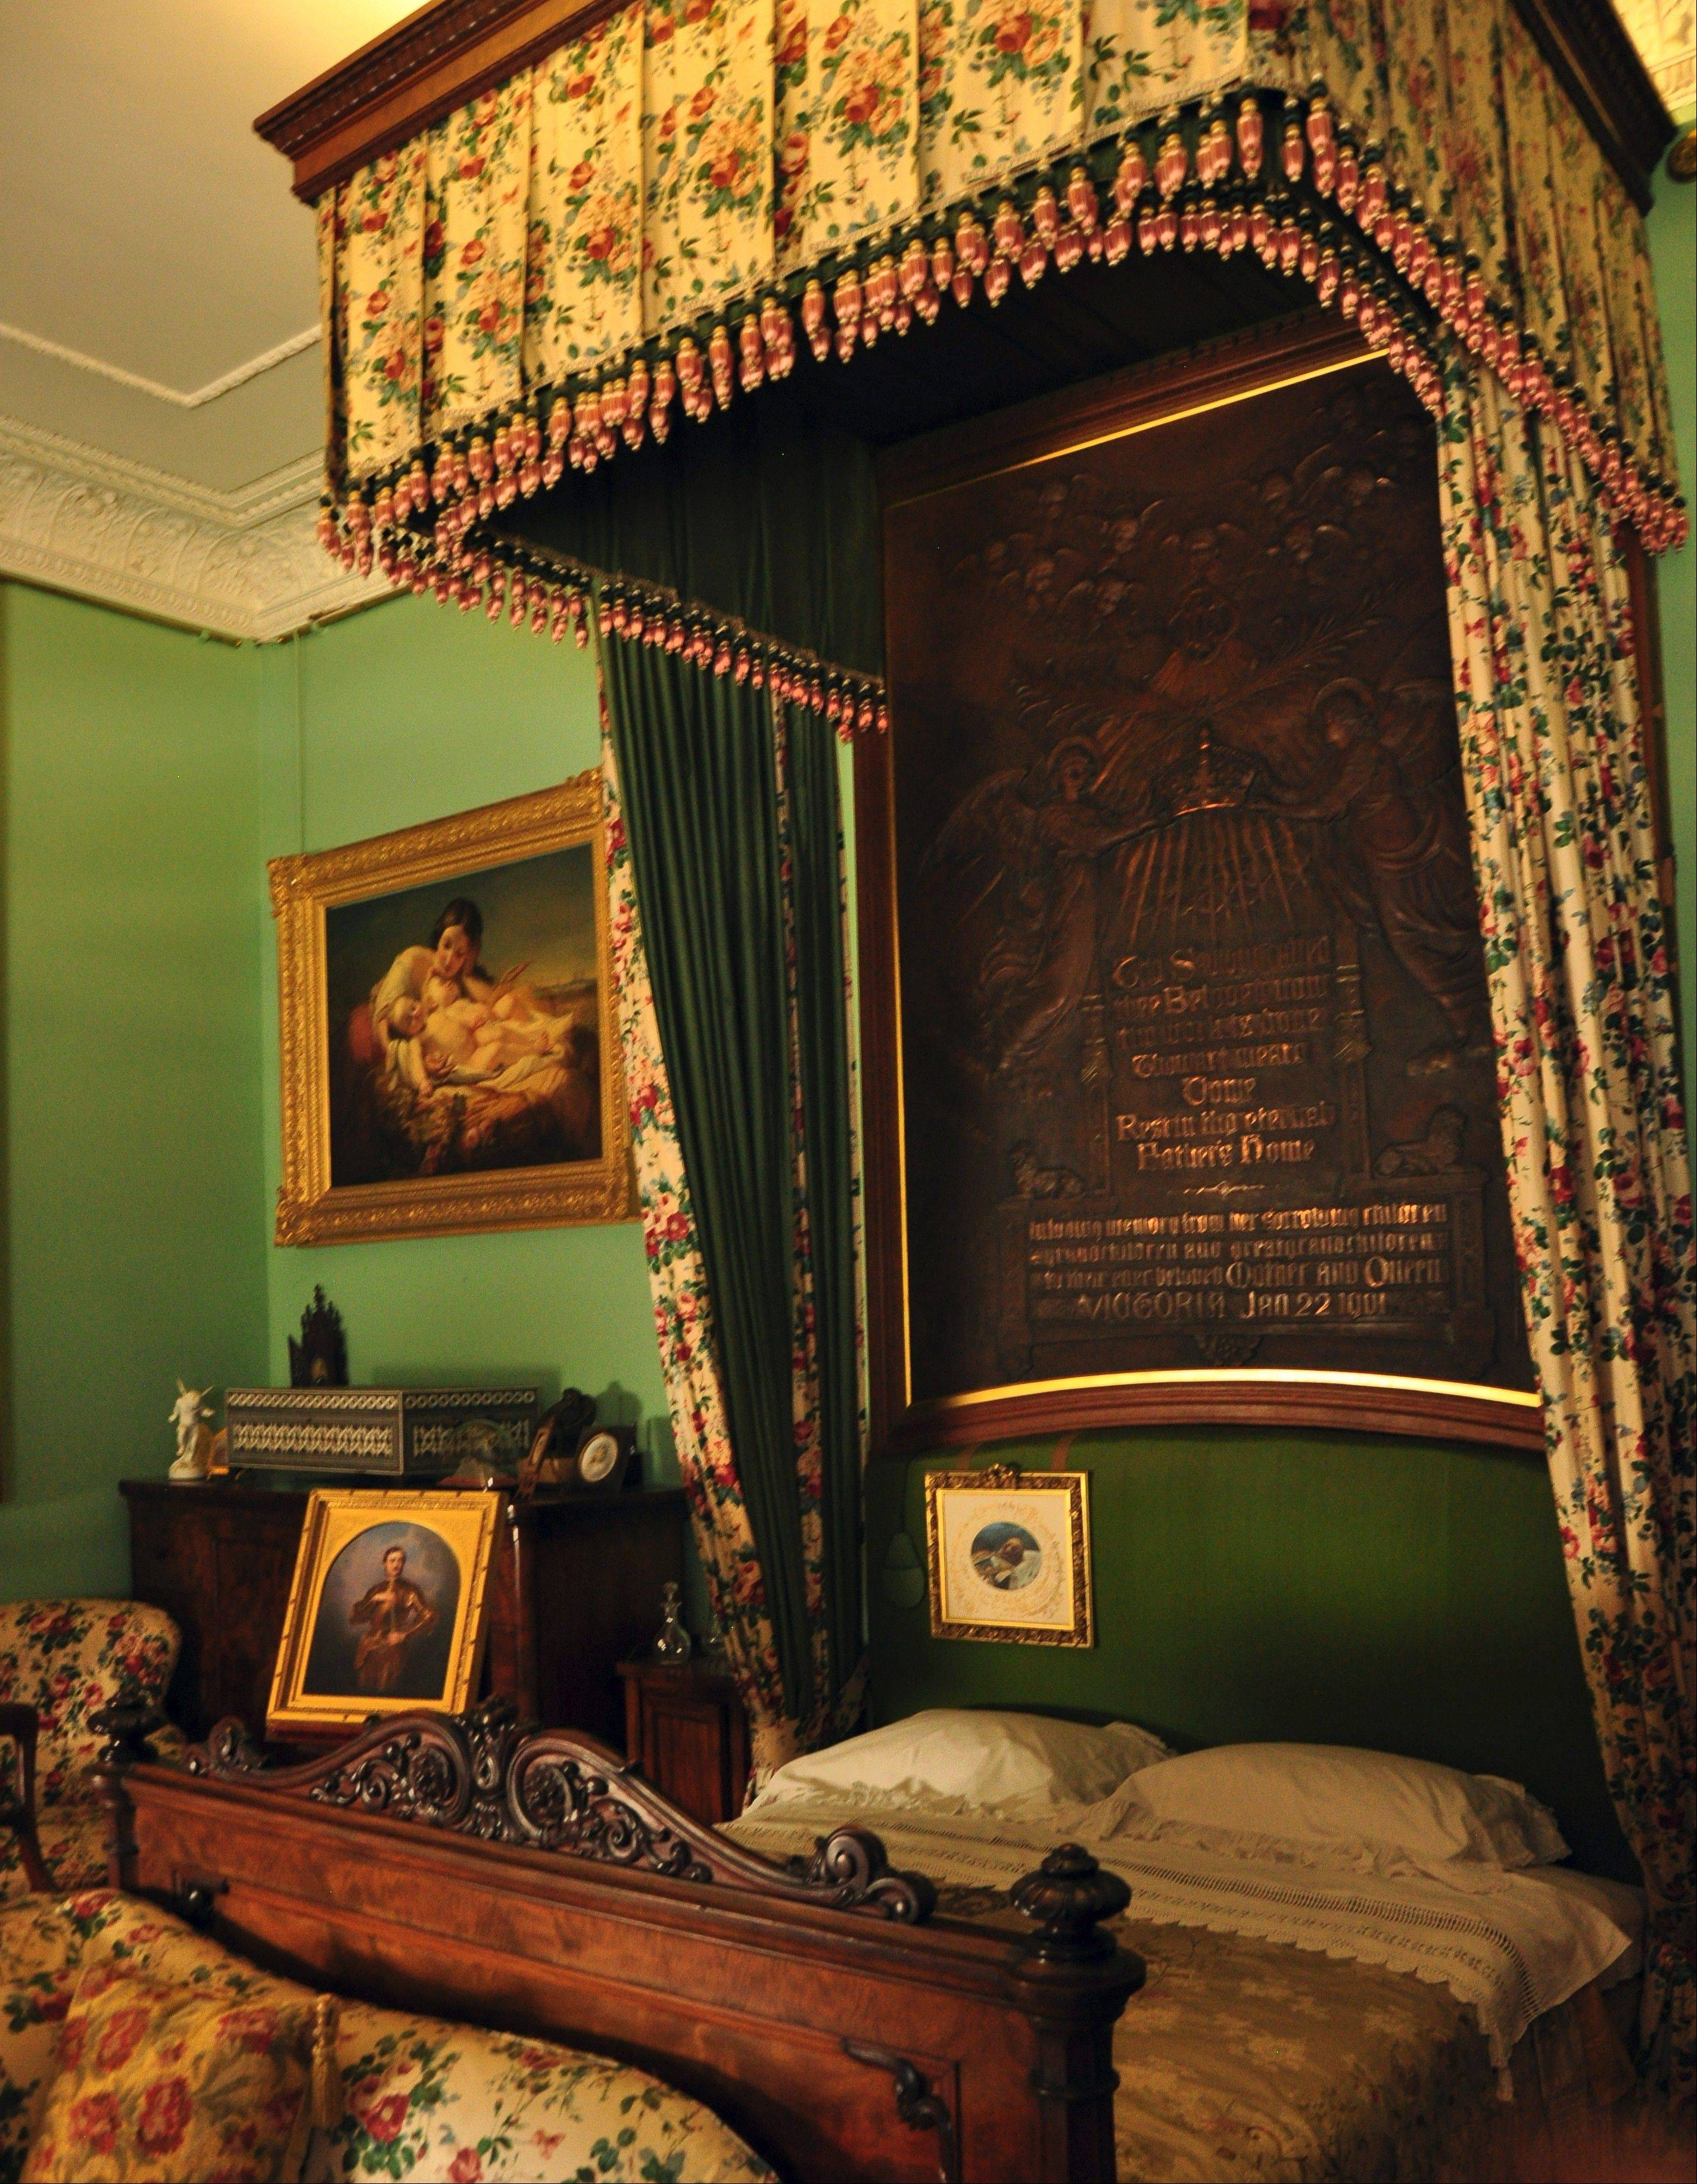 Queen Victoria died in her bedroom at Osborne House. Since Albert's death 40 years earlier, she kept his portrait on the headboard on his side of the bed.